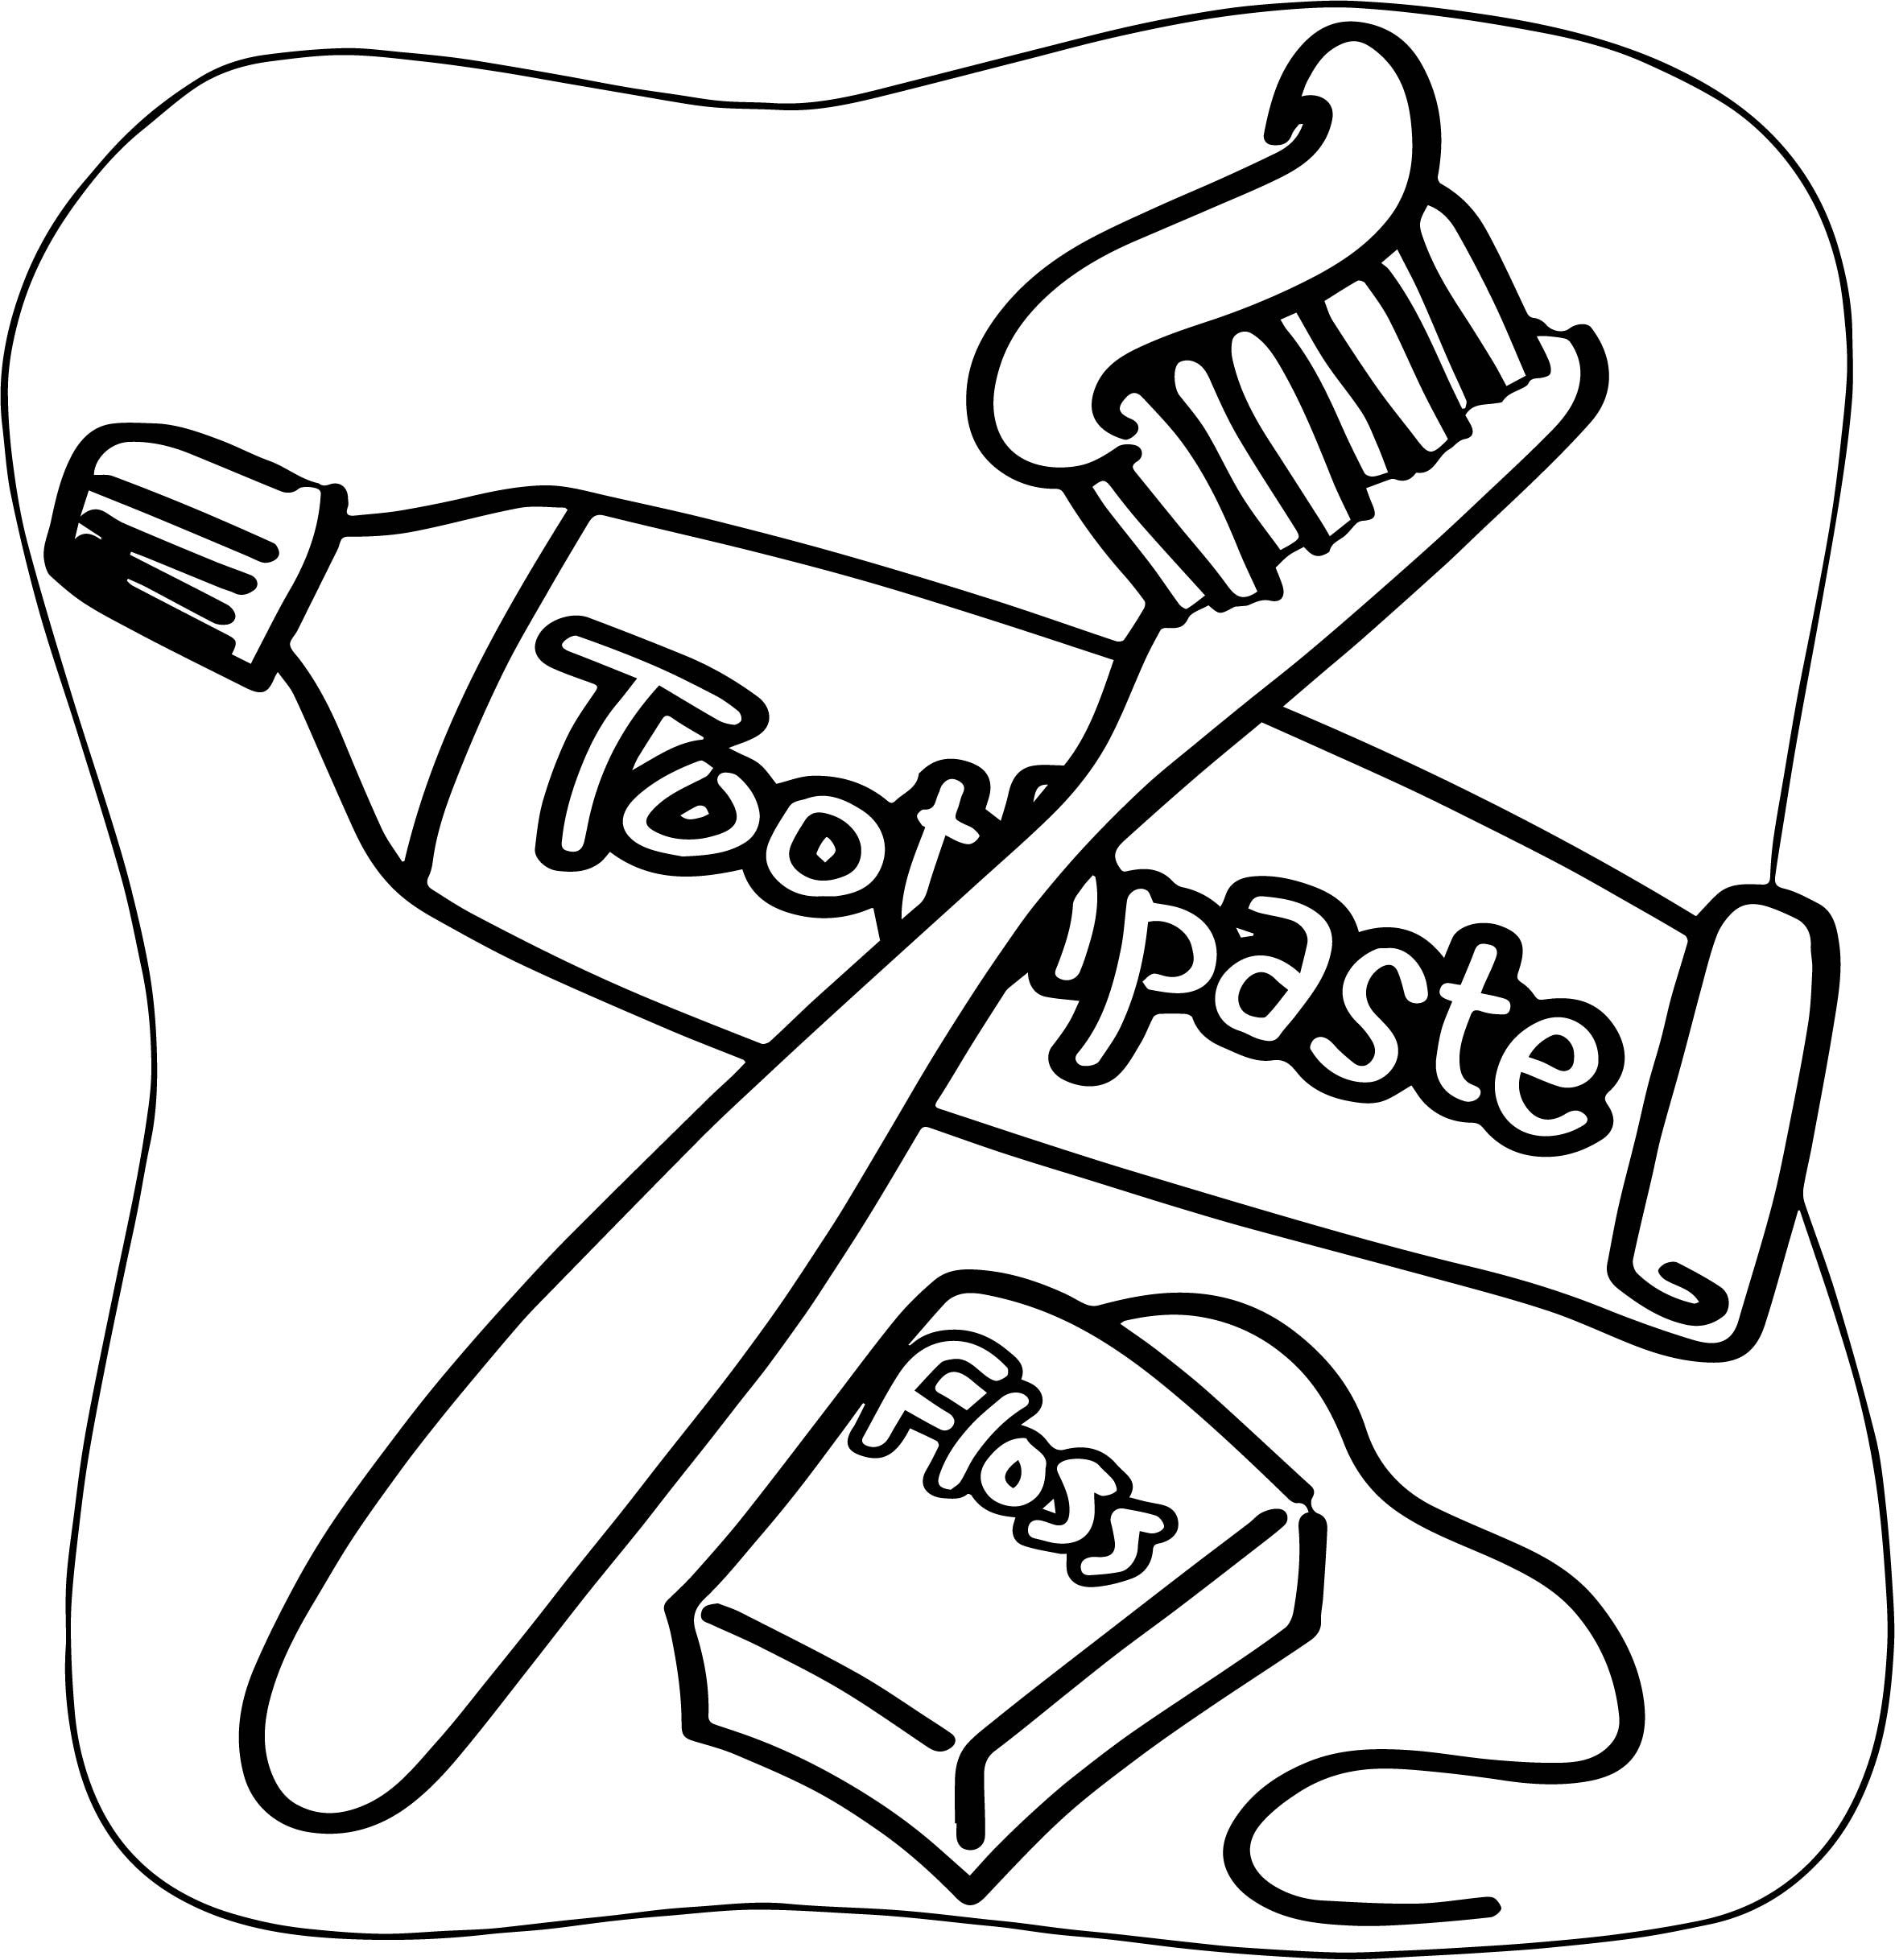 Coloring Toothbrush Toothpaste Drawing And Painting Video For